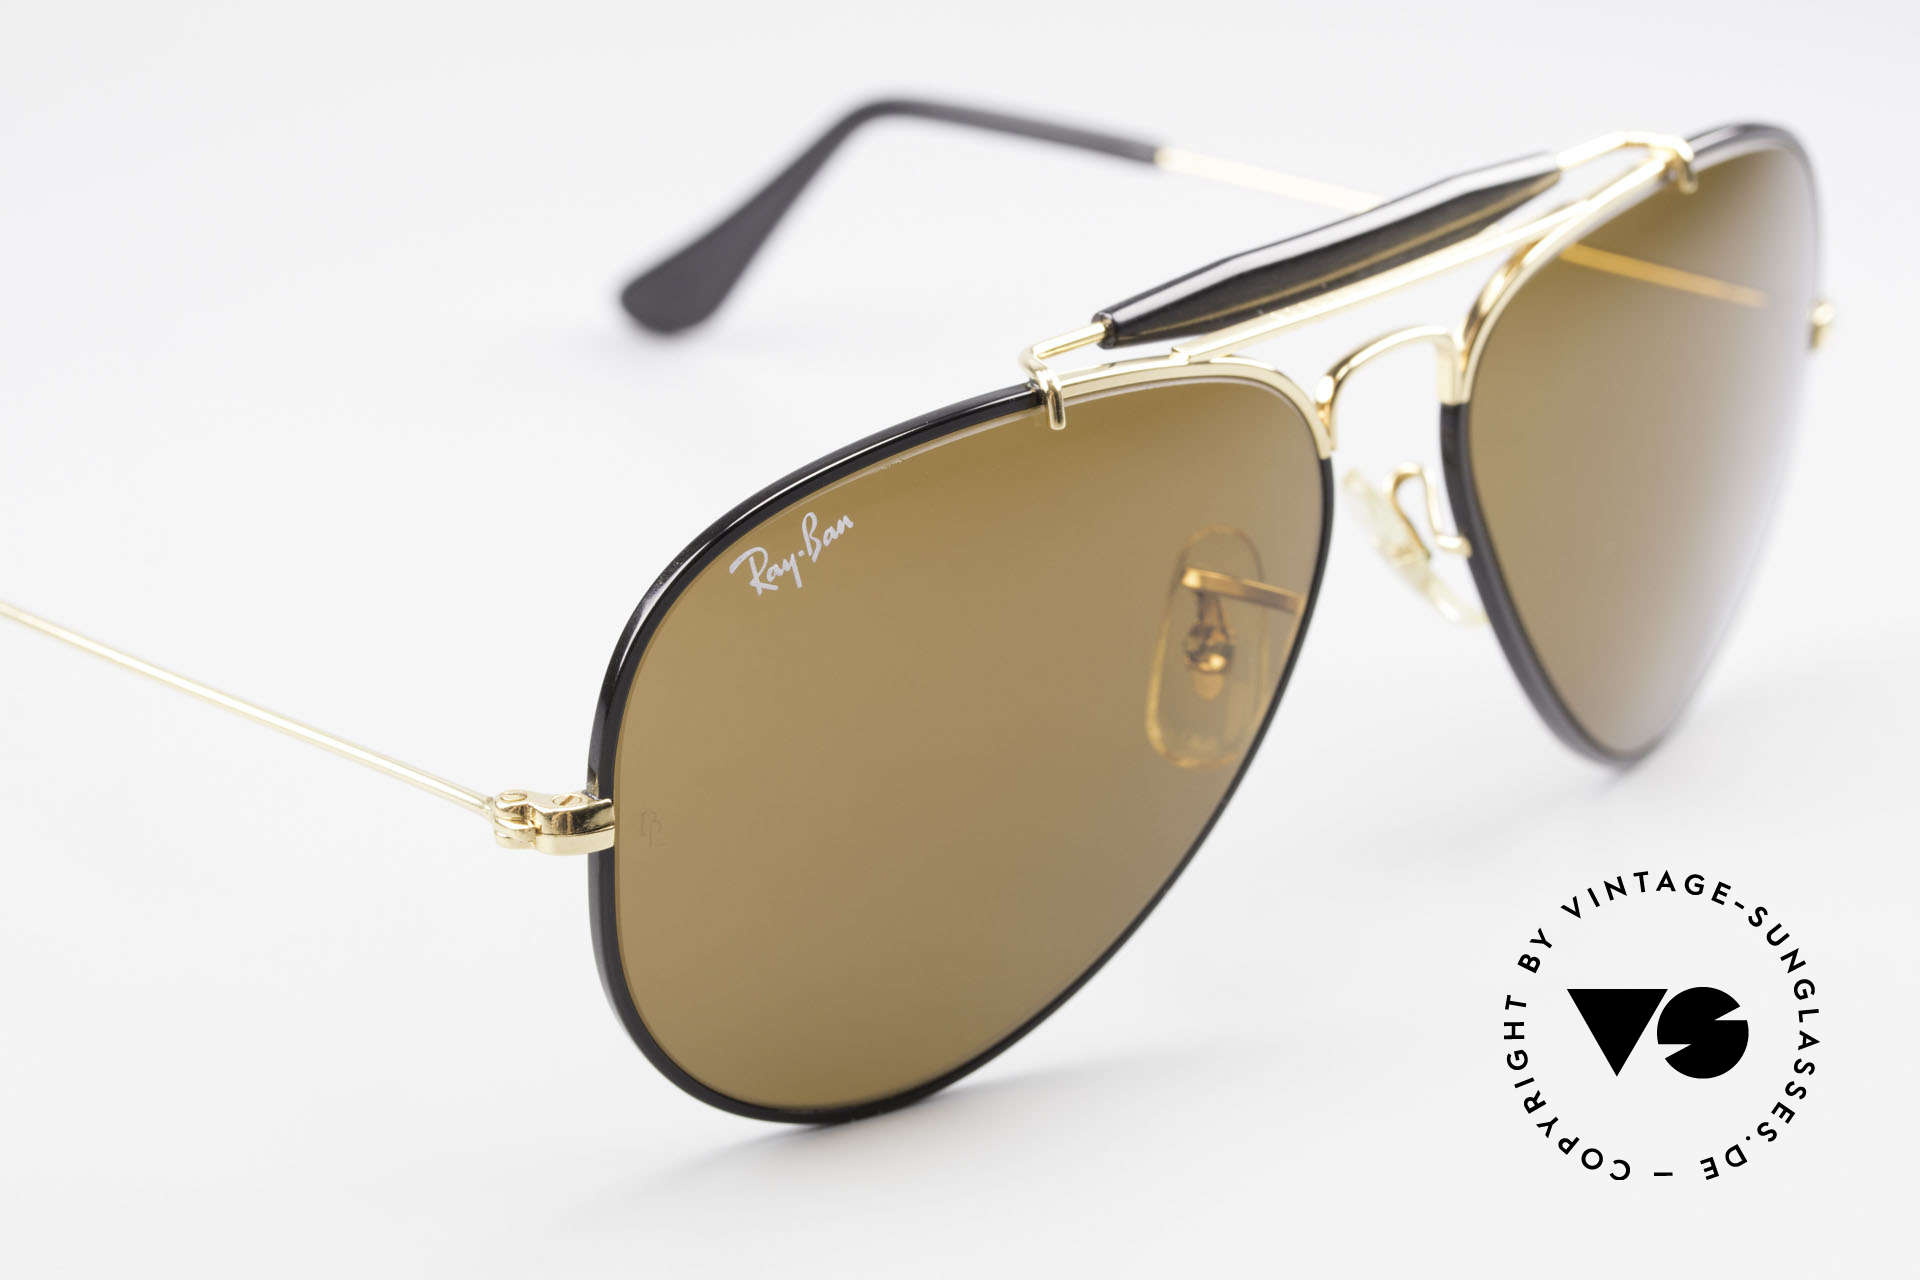 Ray Ban Outdoorsman Precious Metals Ray-Ban USA, NO retro frame; an old original with serial number, Made for Men and Women